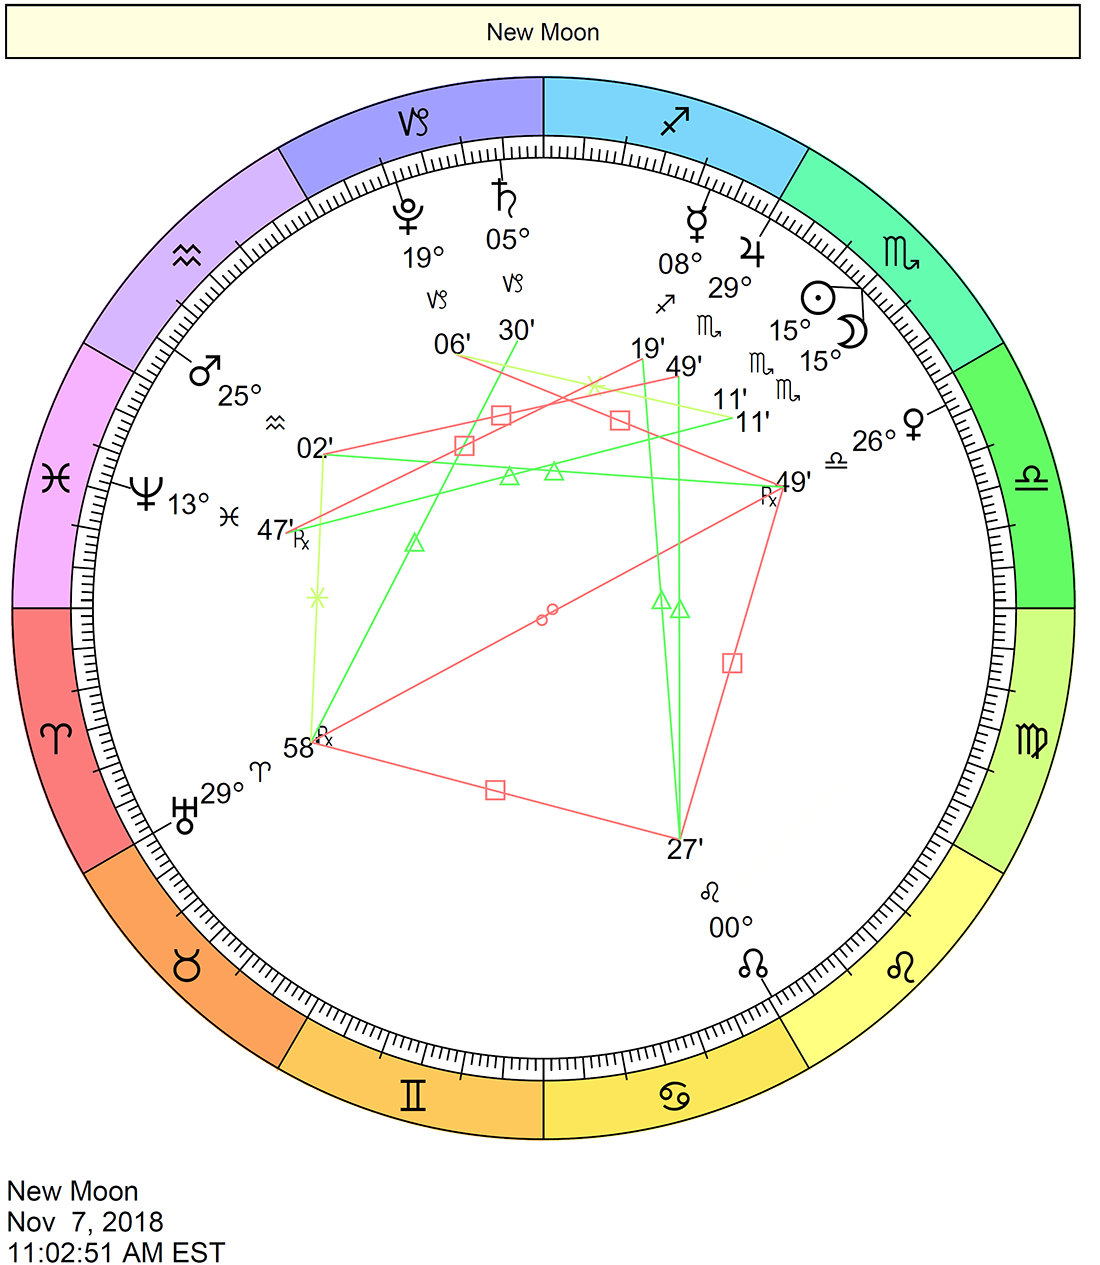 Deciphering the natal chart - where to look, what a good site